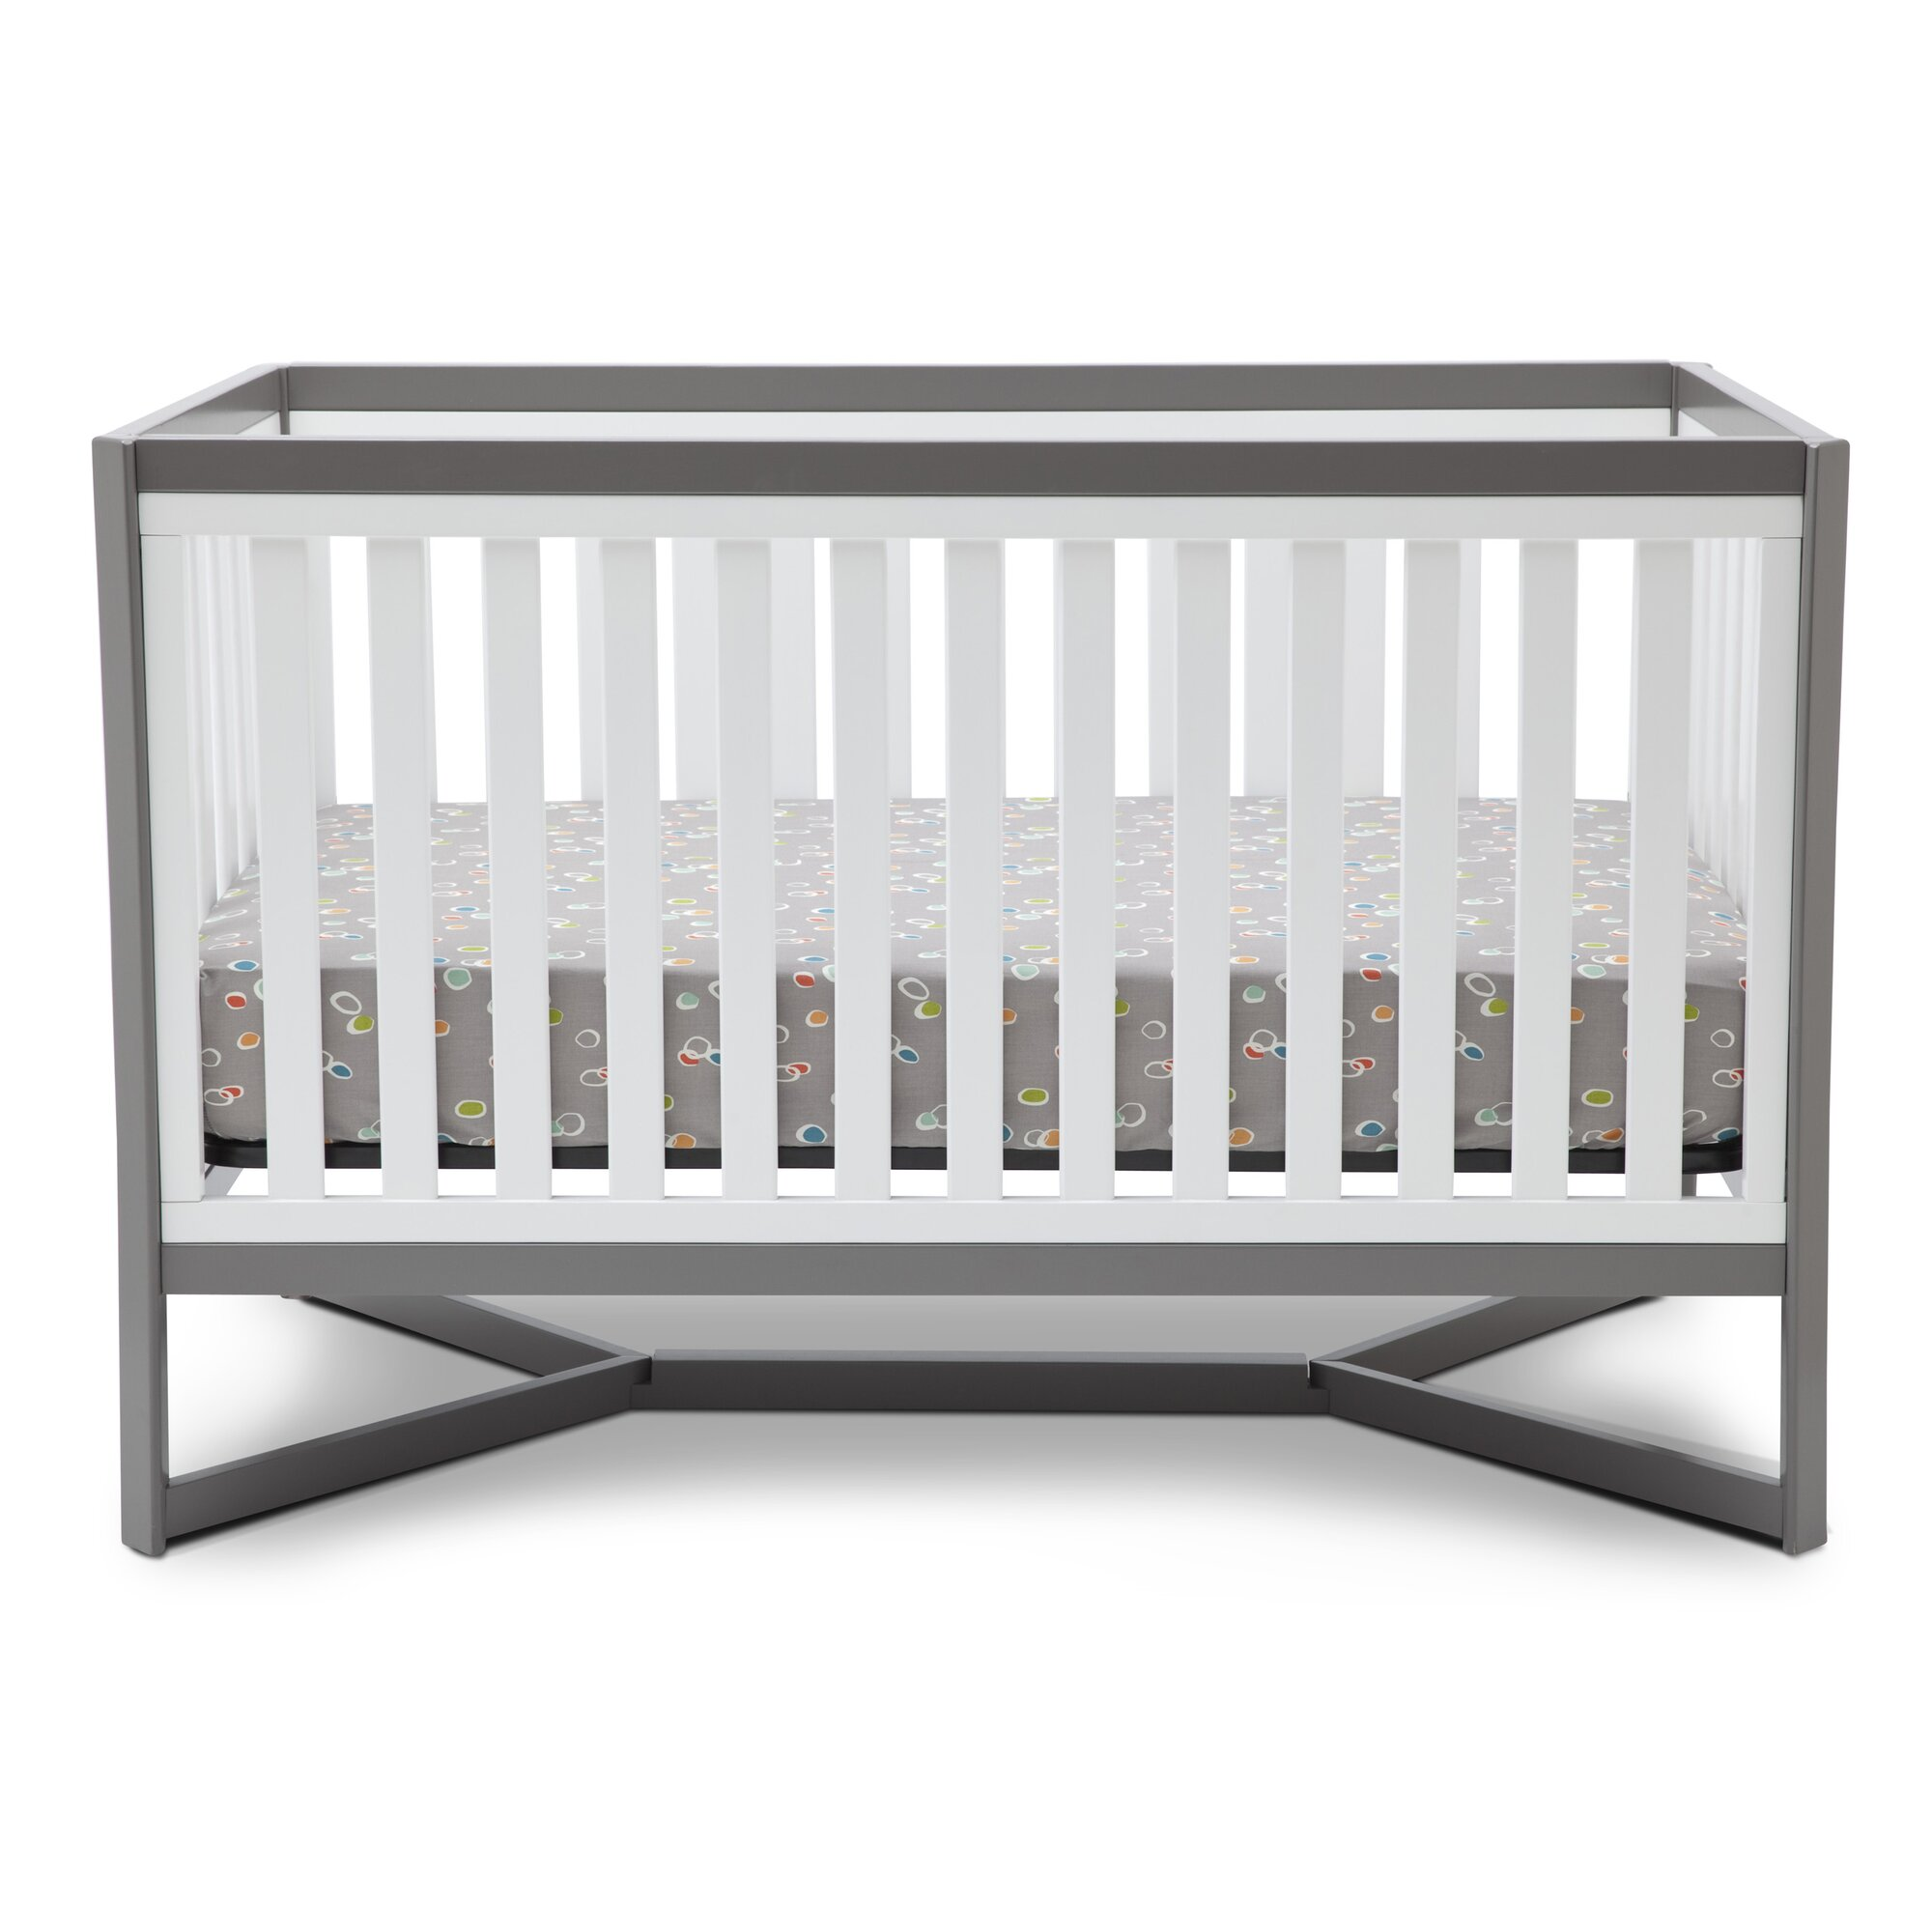 Crib for sale louisville ky - Tribeca 4in1 Convertible Crib